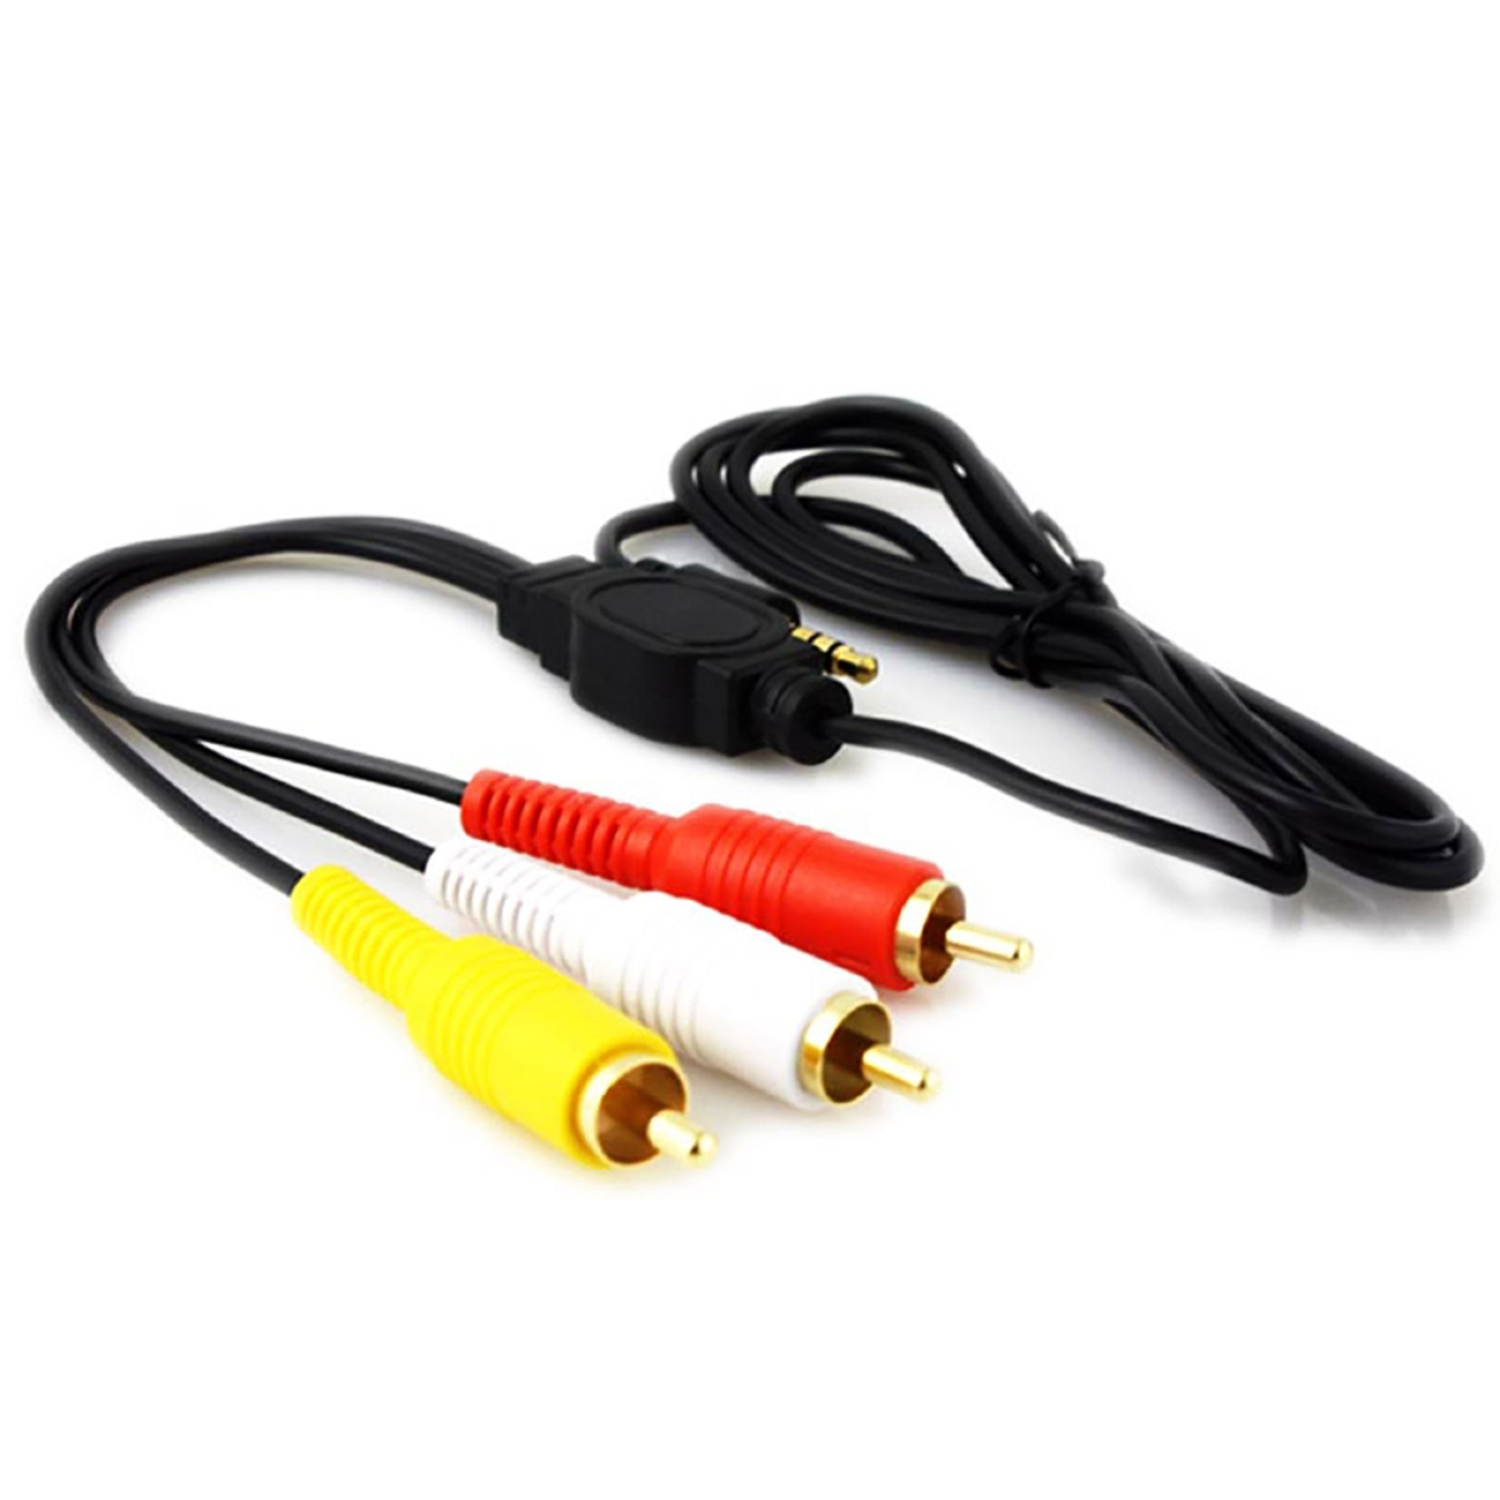 Retro-Bit RDP AV Cable For RetroDuo Portable